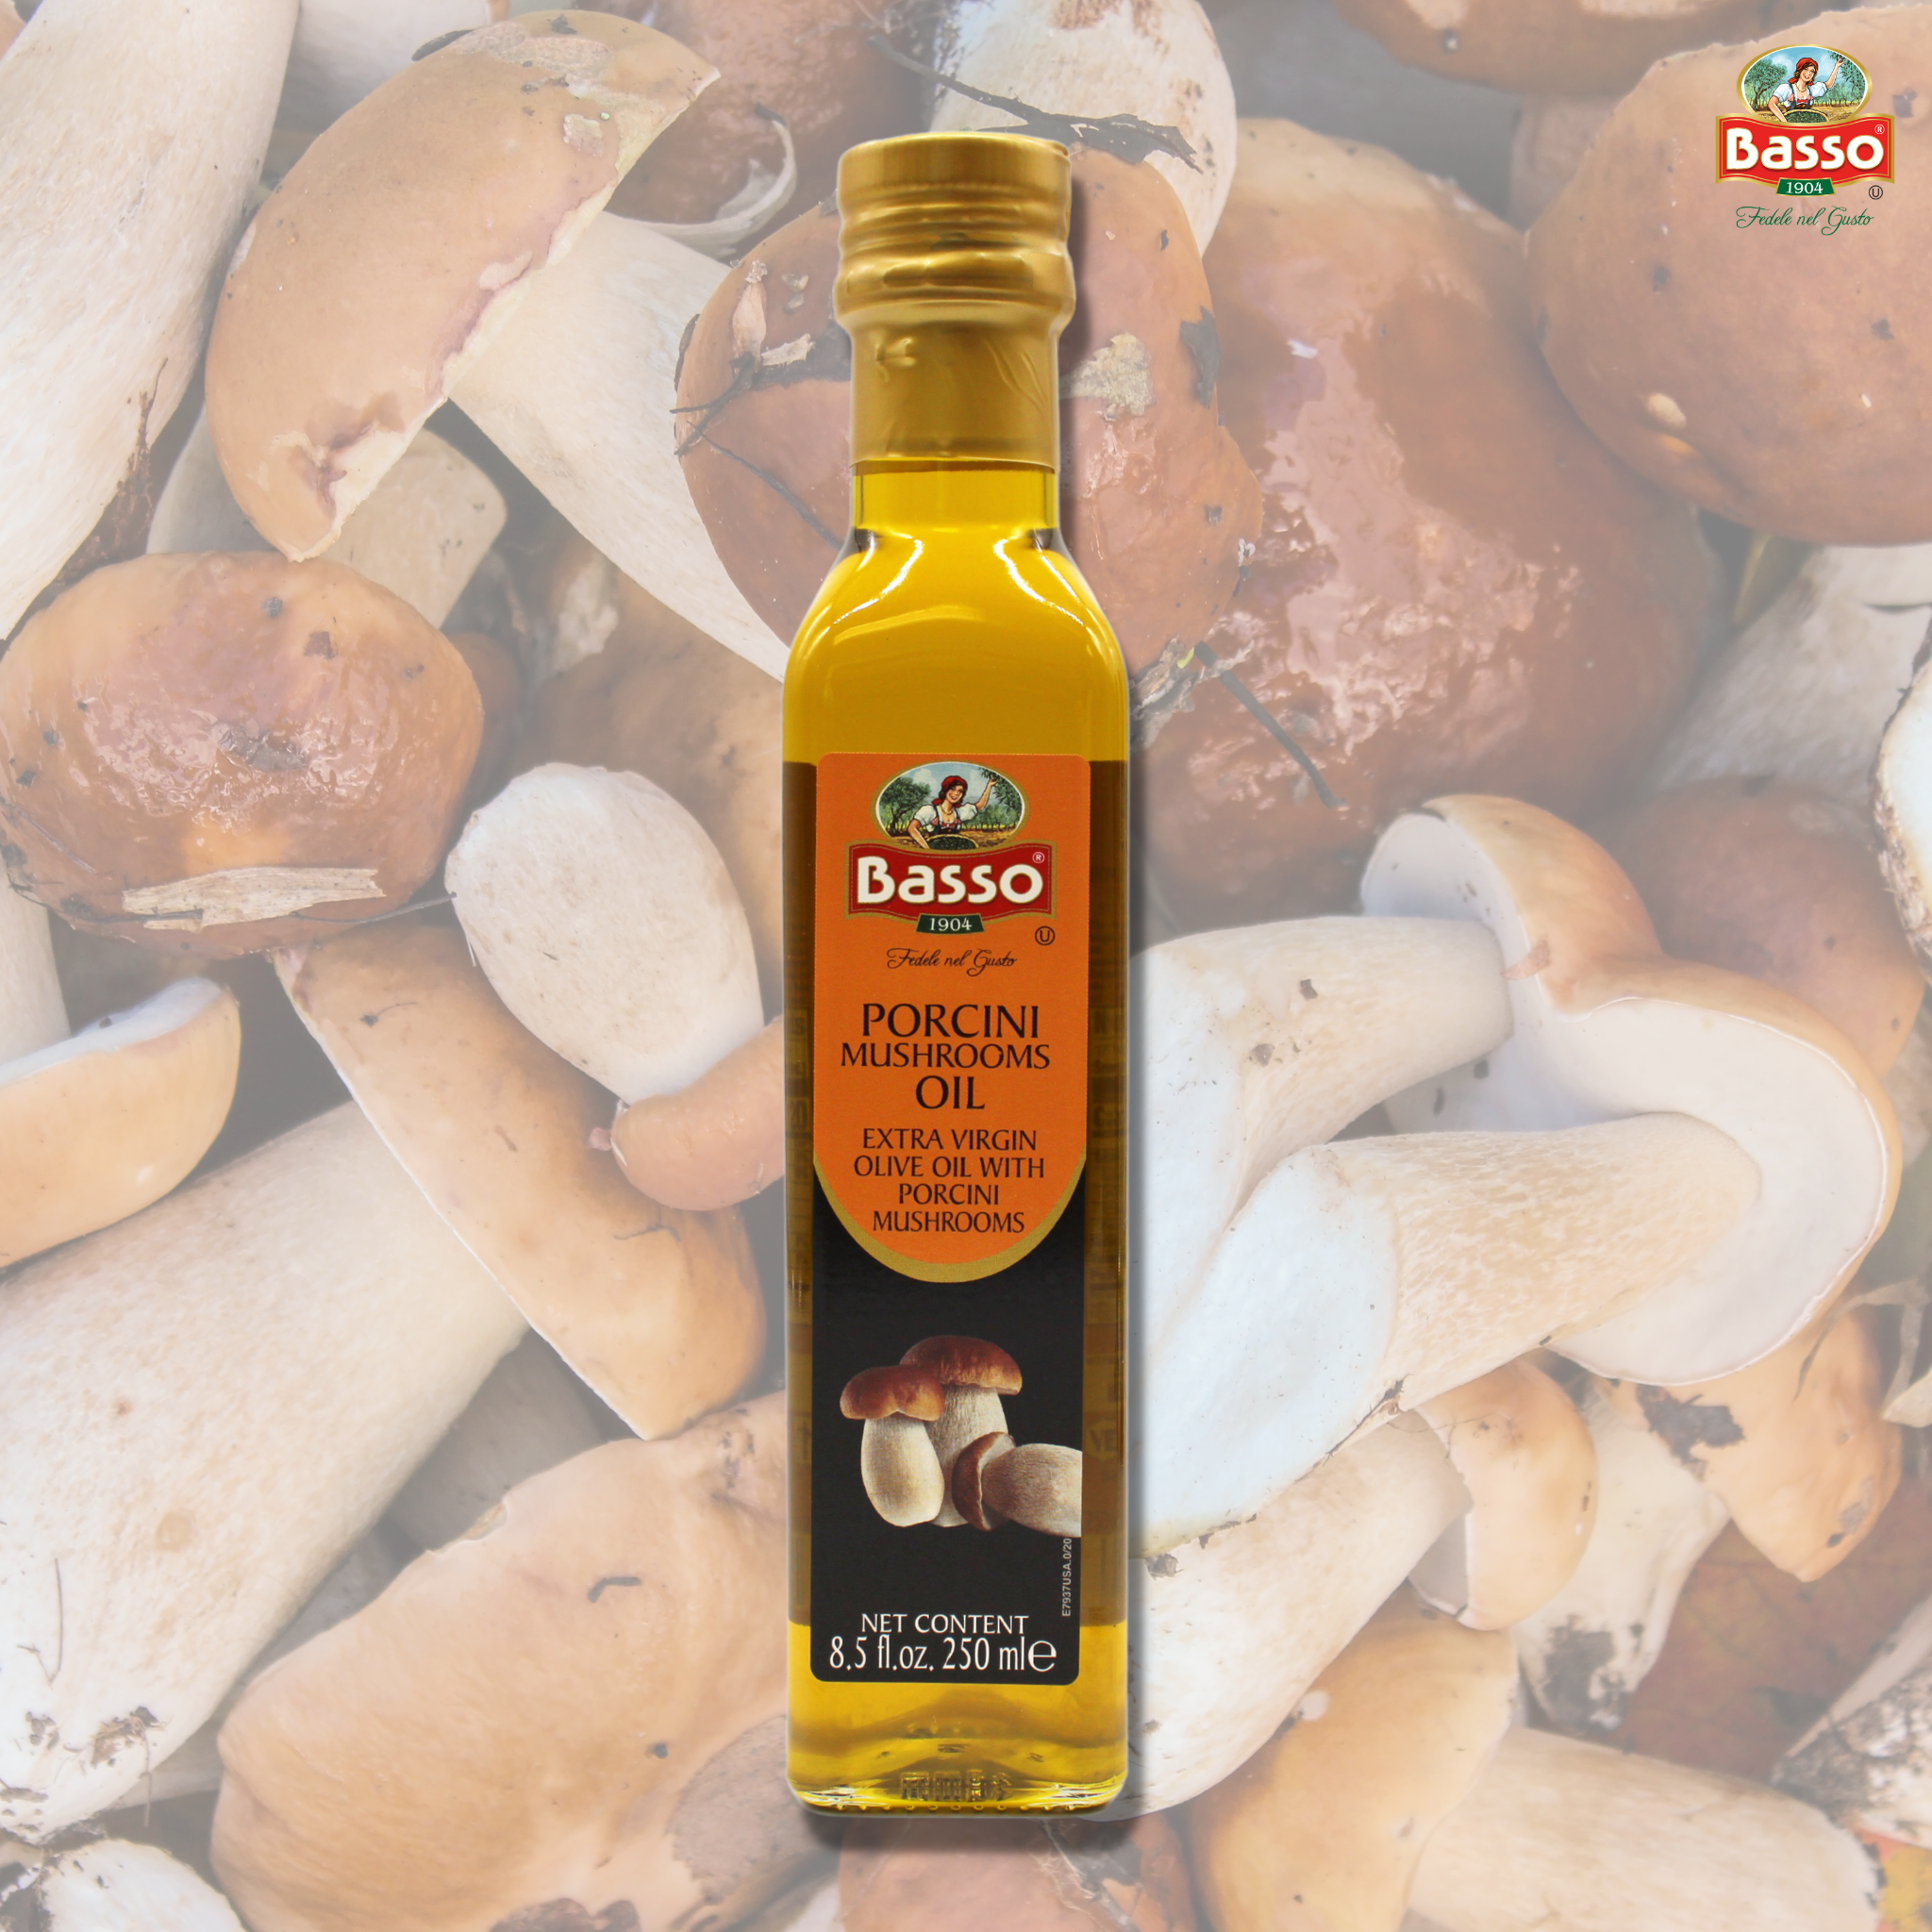 Basso Extra Virgin Olive Oil Porcini 8.5 fl oz